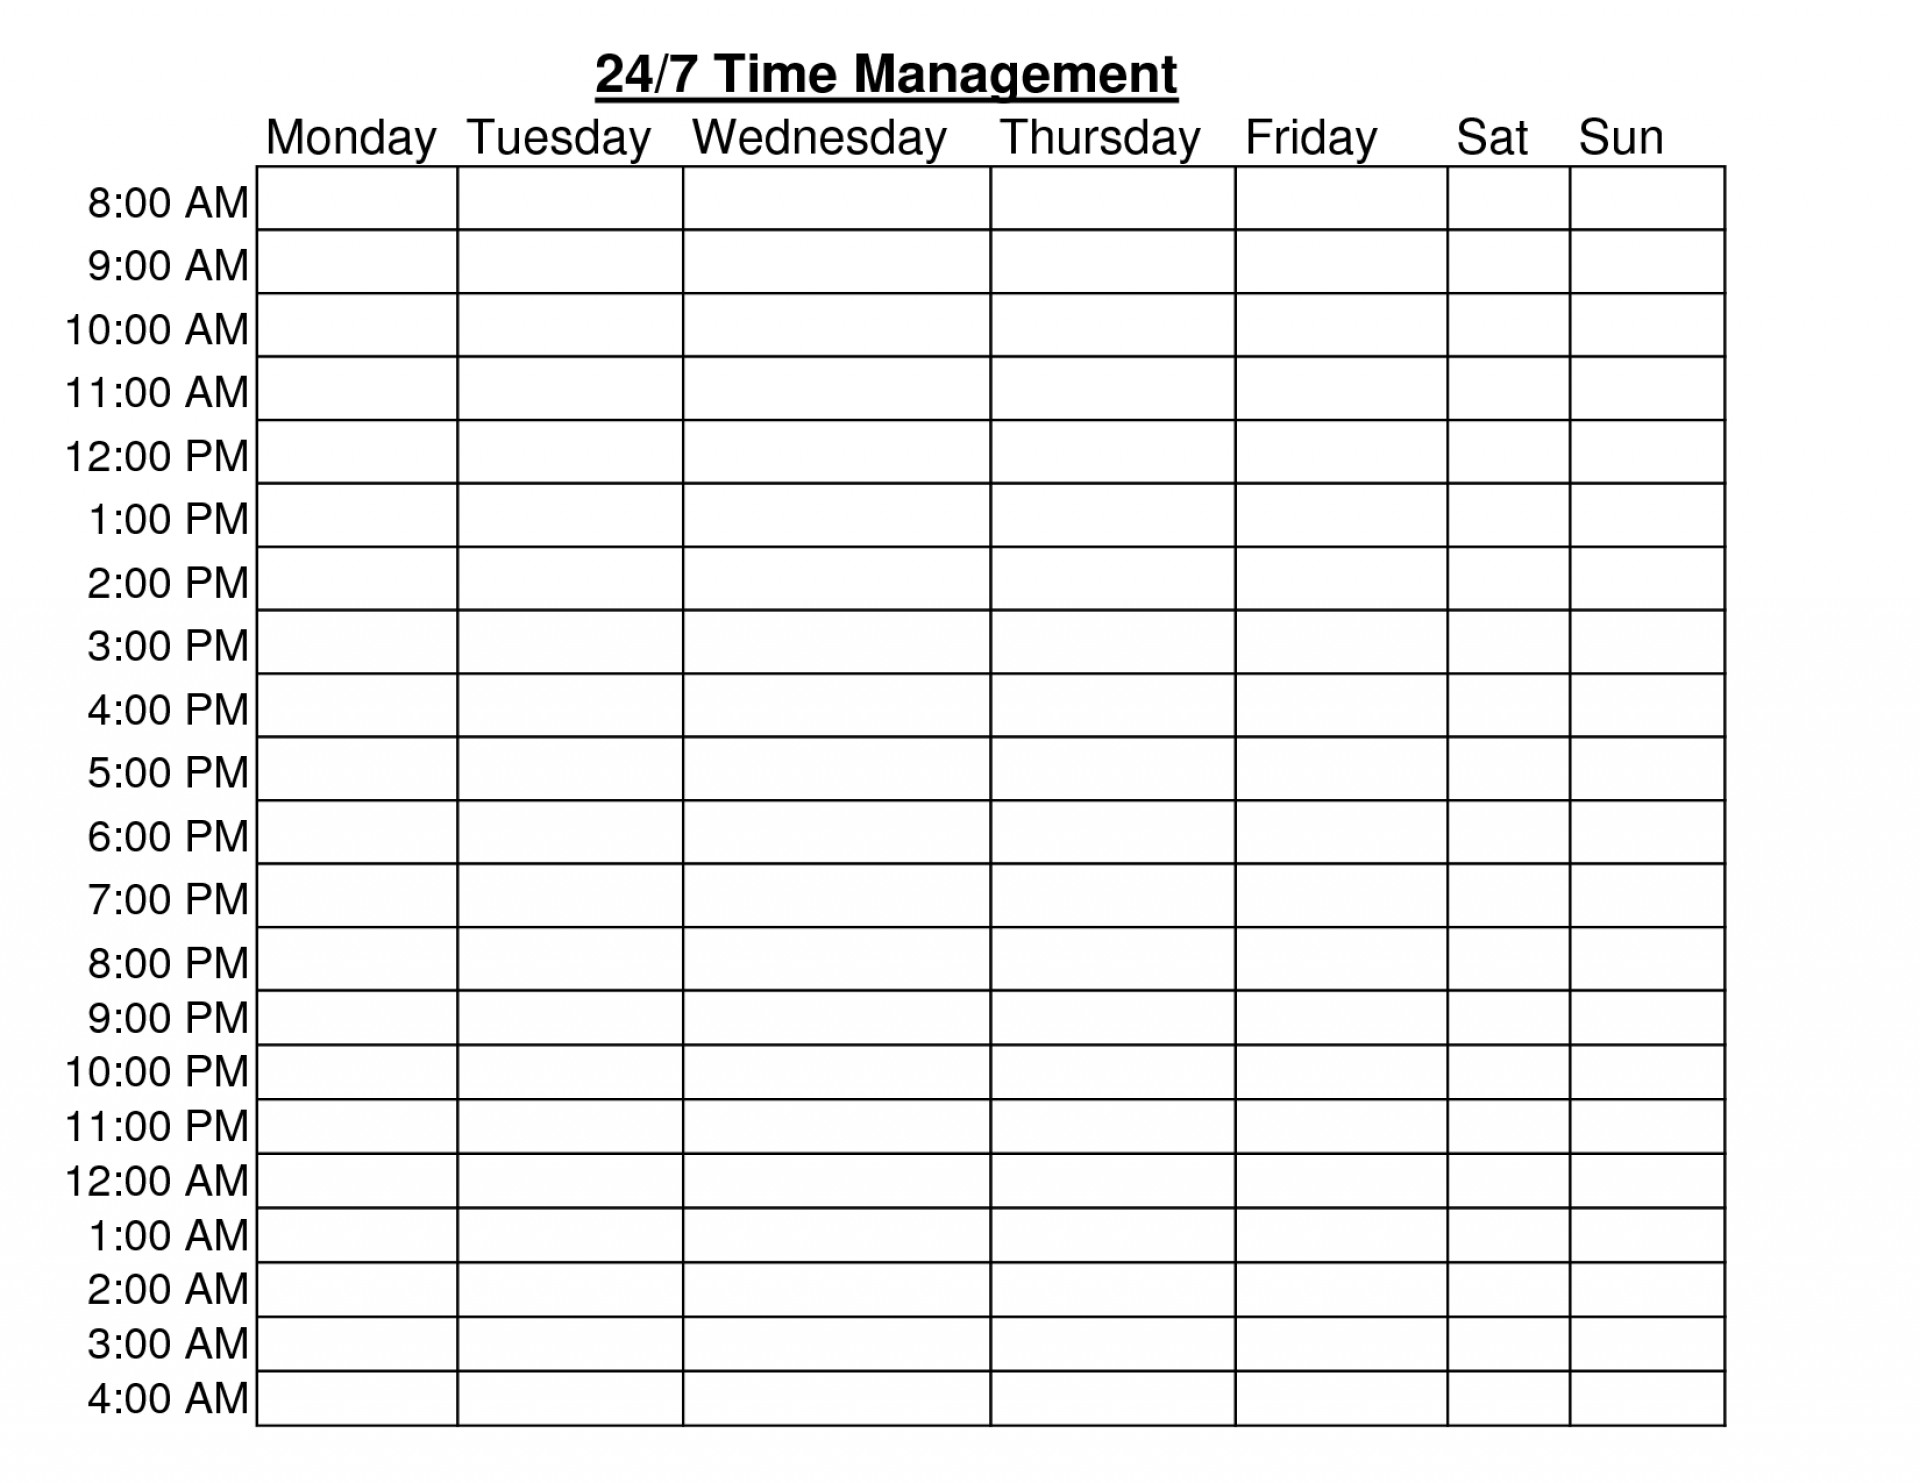 Time Table Format Pdf Schedule Template Free Planner Download Daily - Time Management Forms Free Printable